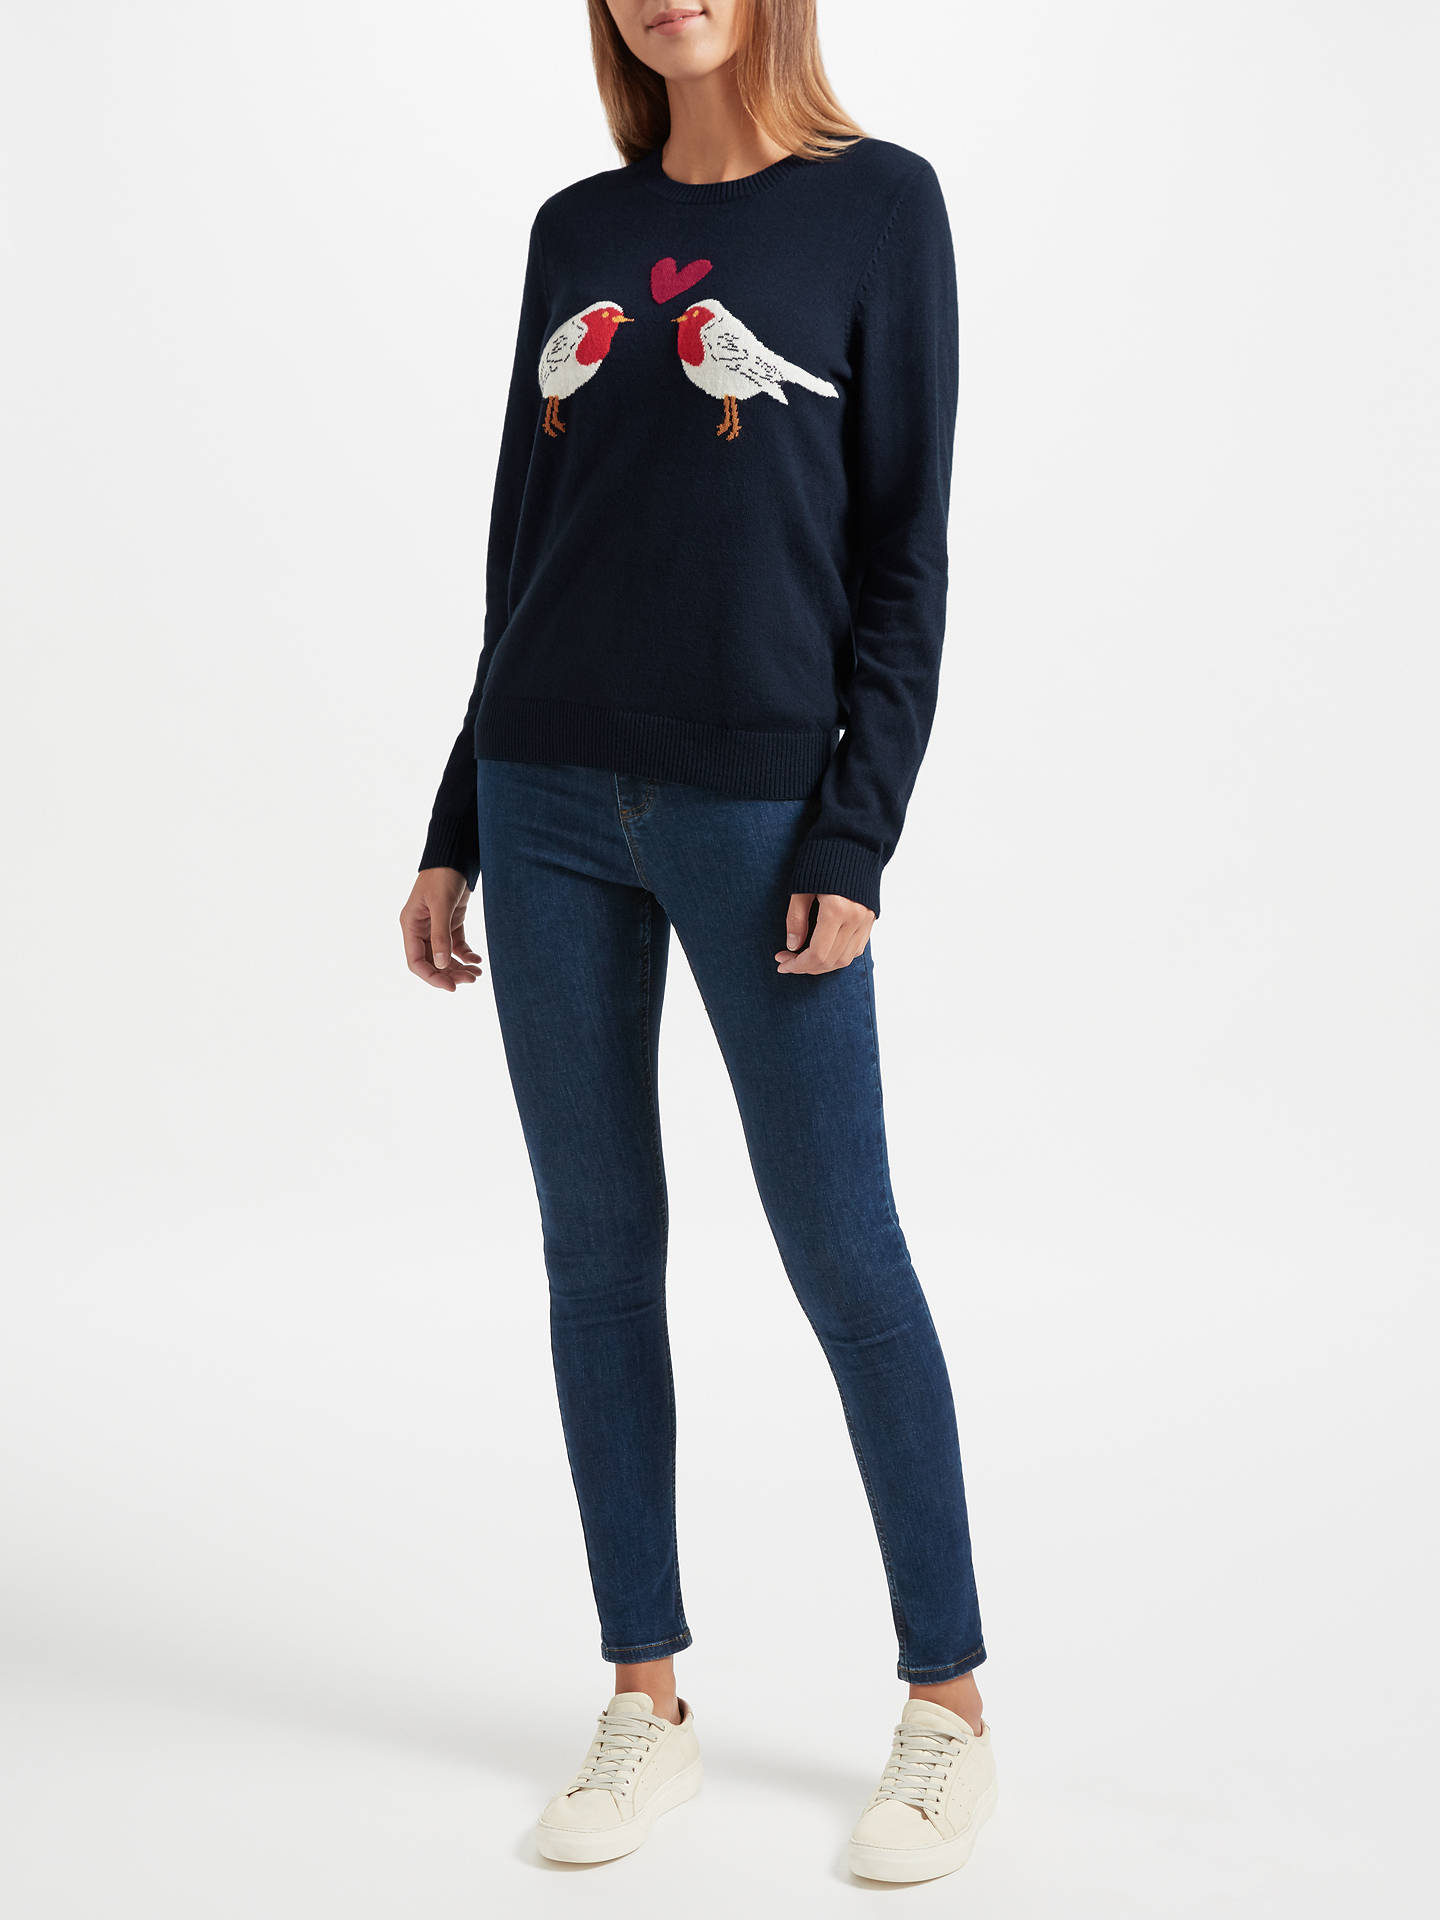 BuyCollection WEEKEND by John Lewis Love Robin Intarsia Knit Jumper, Navy, 8 Online at johnlewis.com